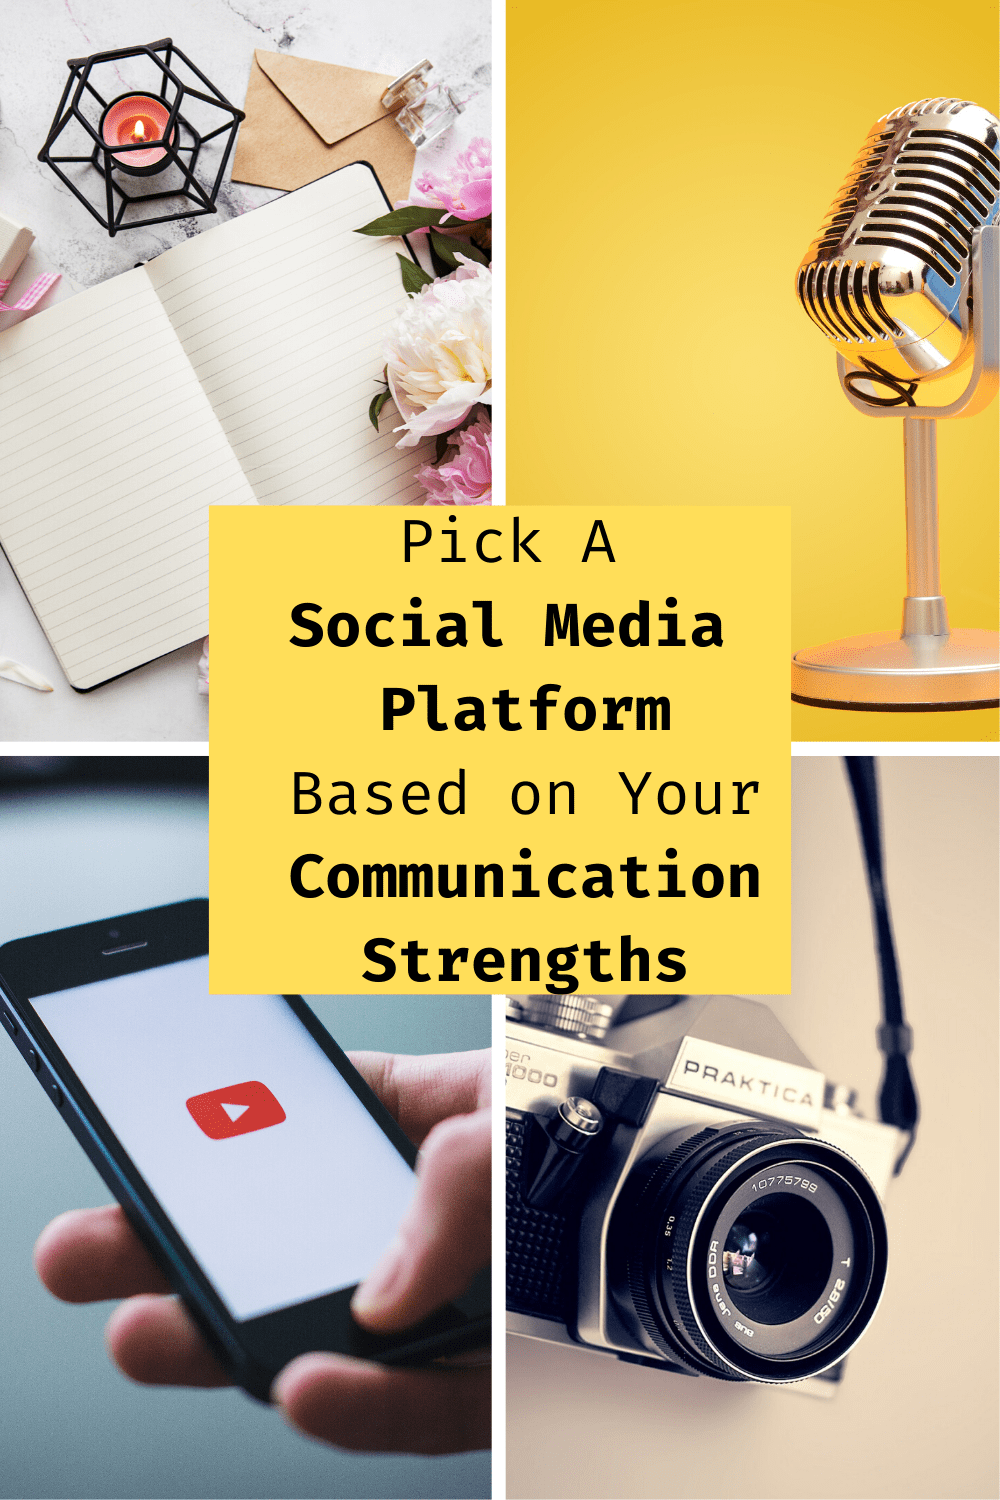 Choose the social media platform based on your communication strengths